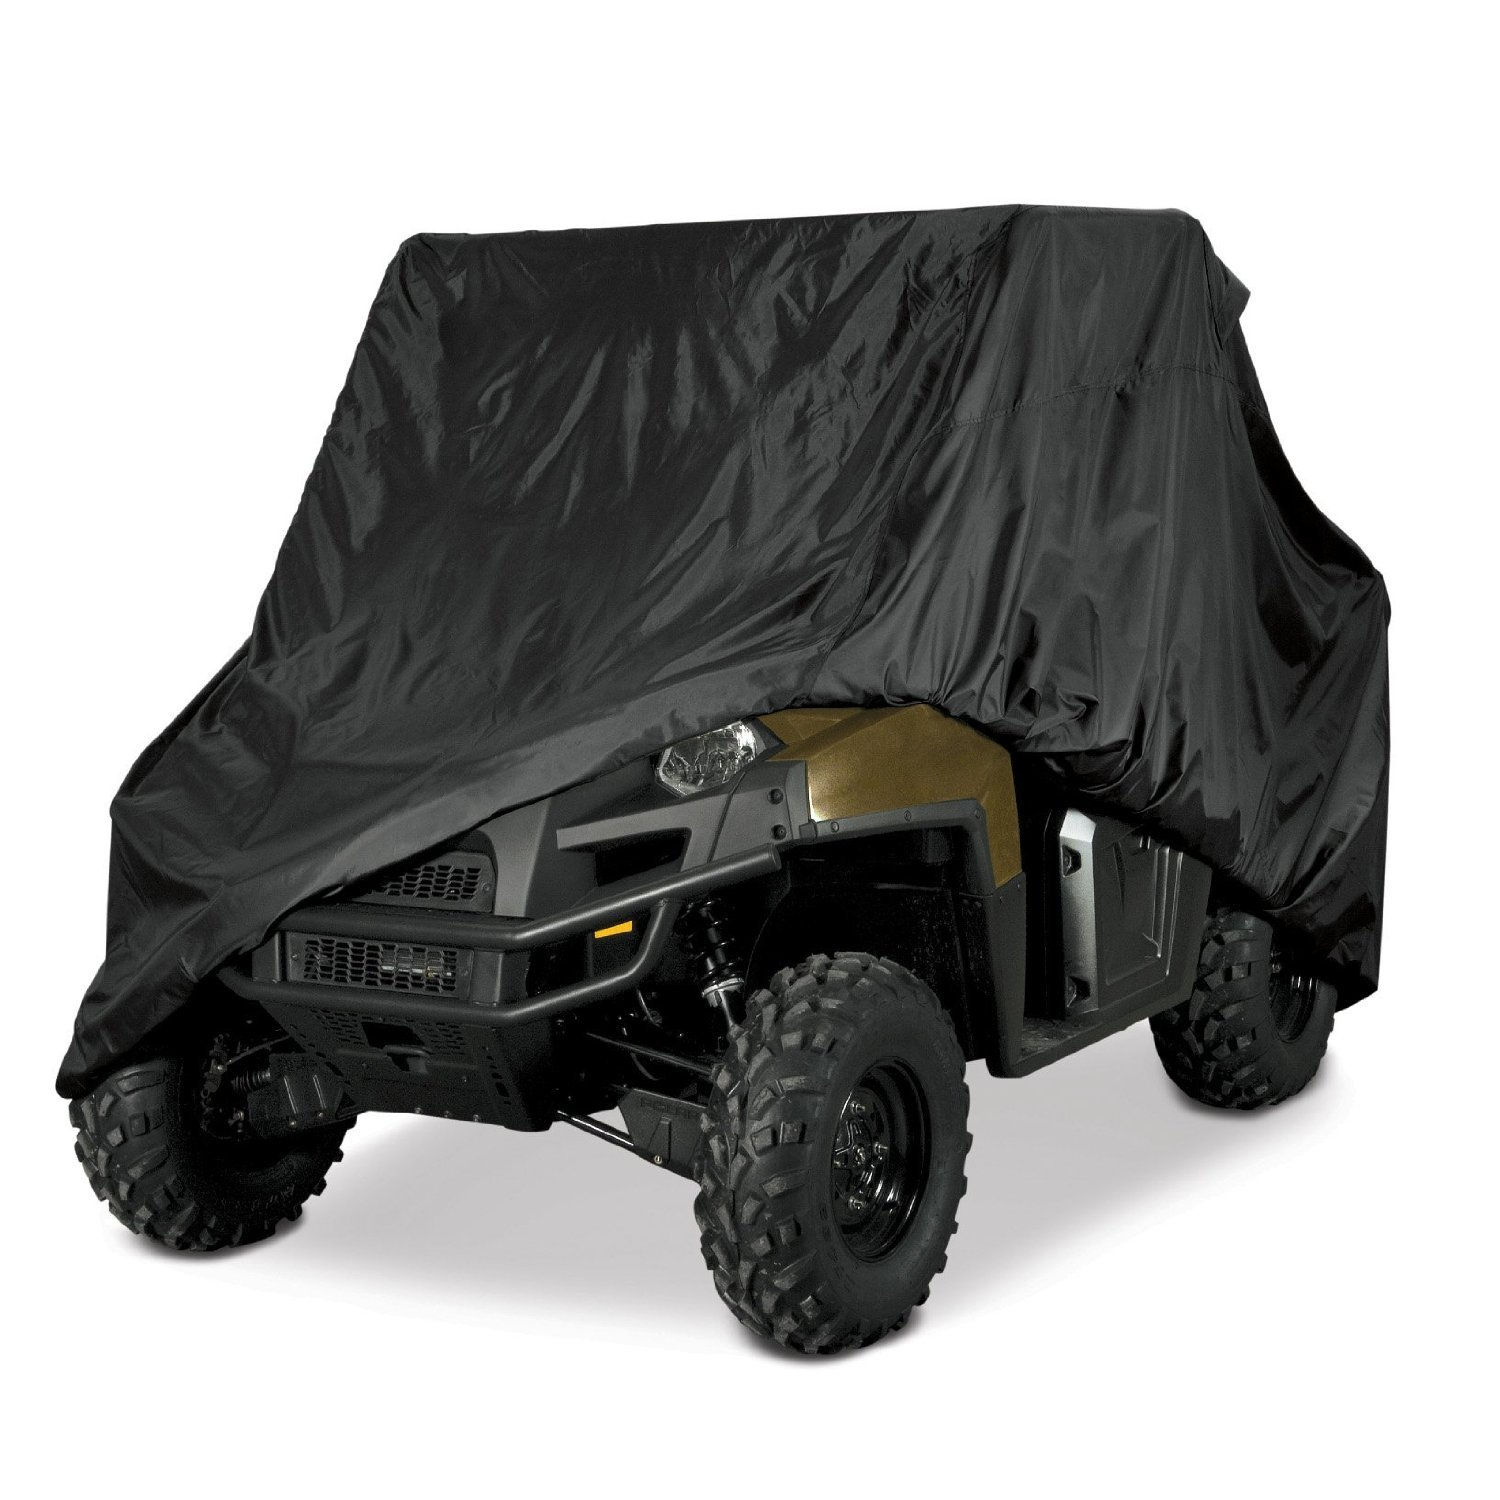 UTV HEAVY DUTY WATERPROOF UTV SIDE BY SIDE COVER COVERS FITS UP TO 120'L W/ ROLL CAGE ATV COVER RHINO RANGER MULE GATOR PROWLER RAZOR RECON RZR PIONEER Viking Wolverine Can am Defender Wildcat HDX Rugged Covers